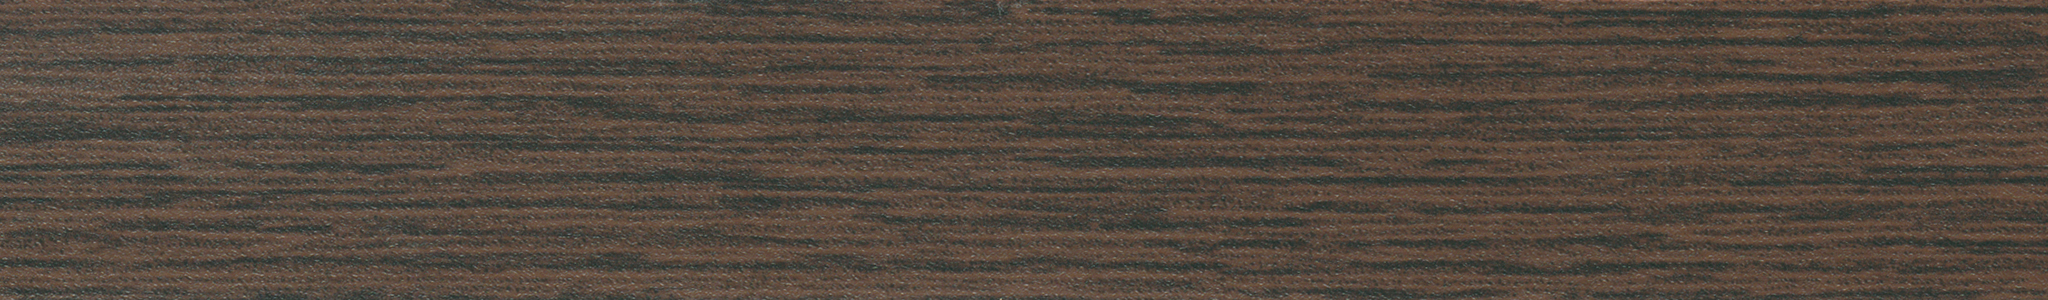 HD 282227 Chant ABS Wenge Perle